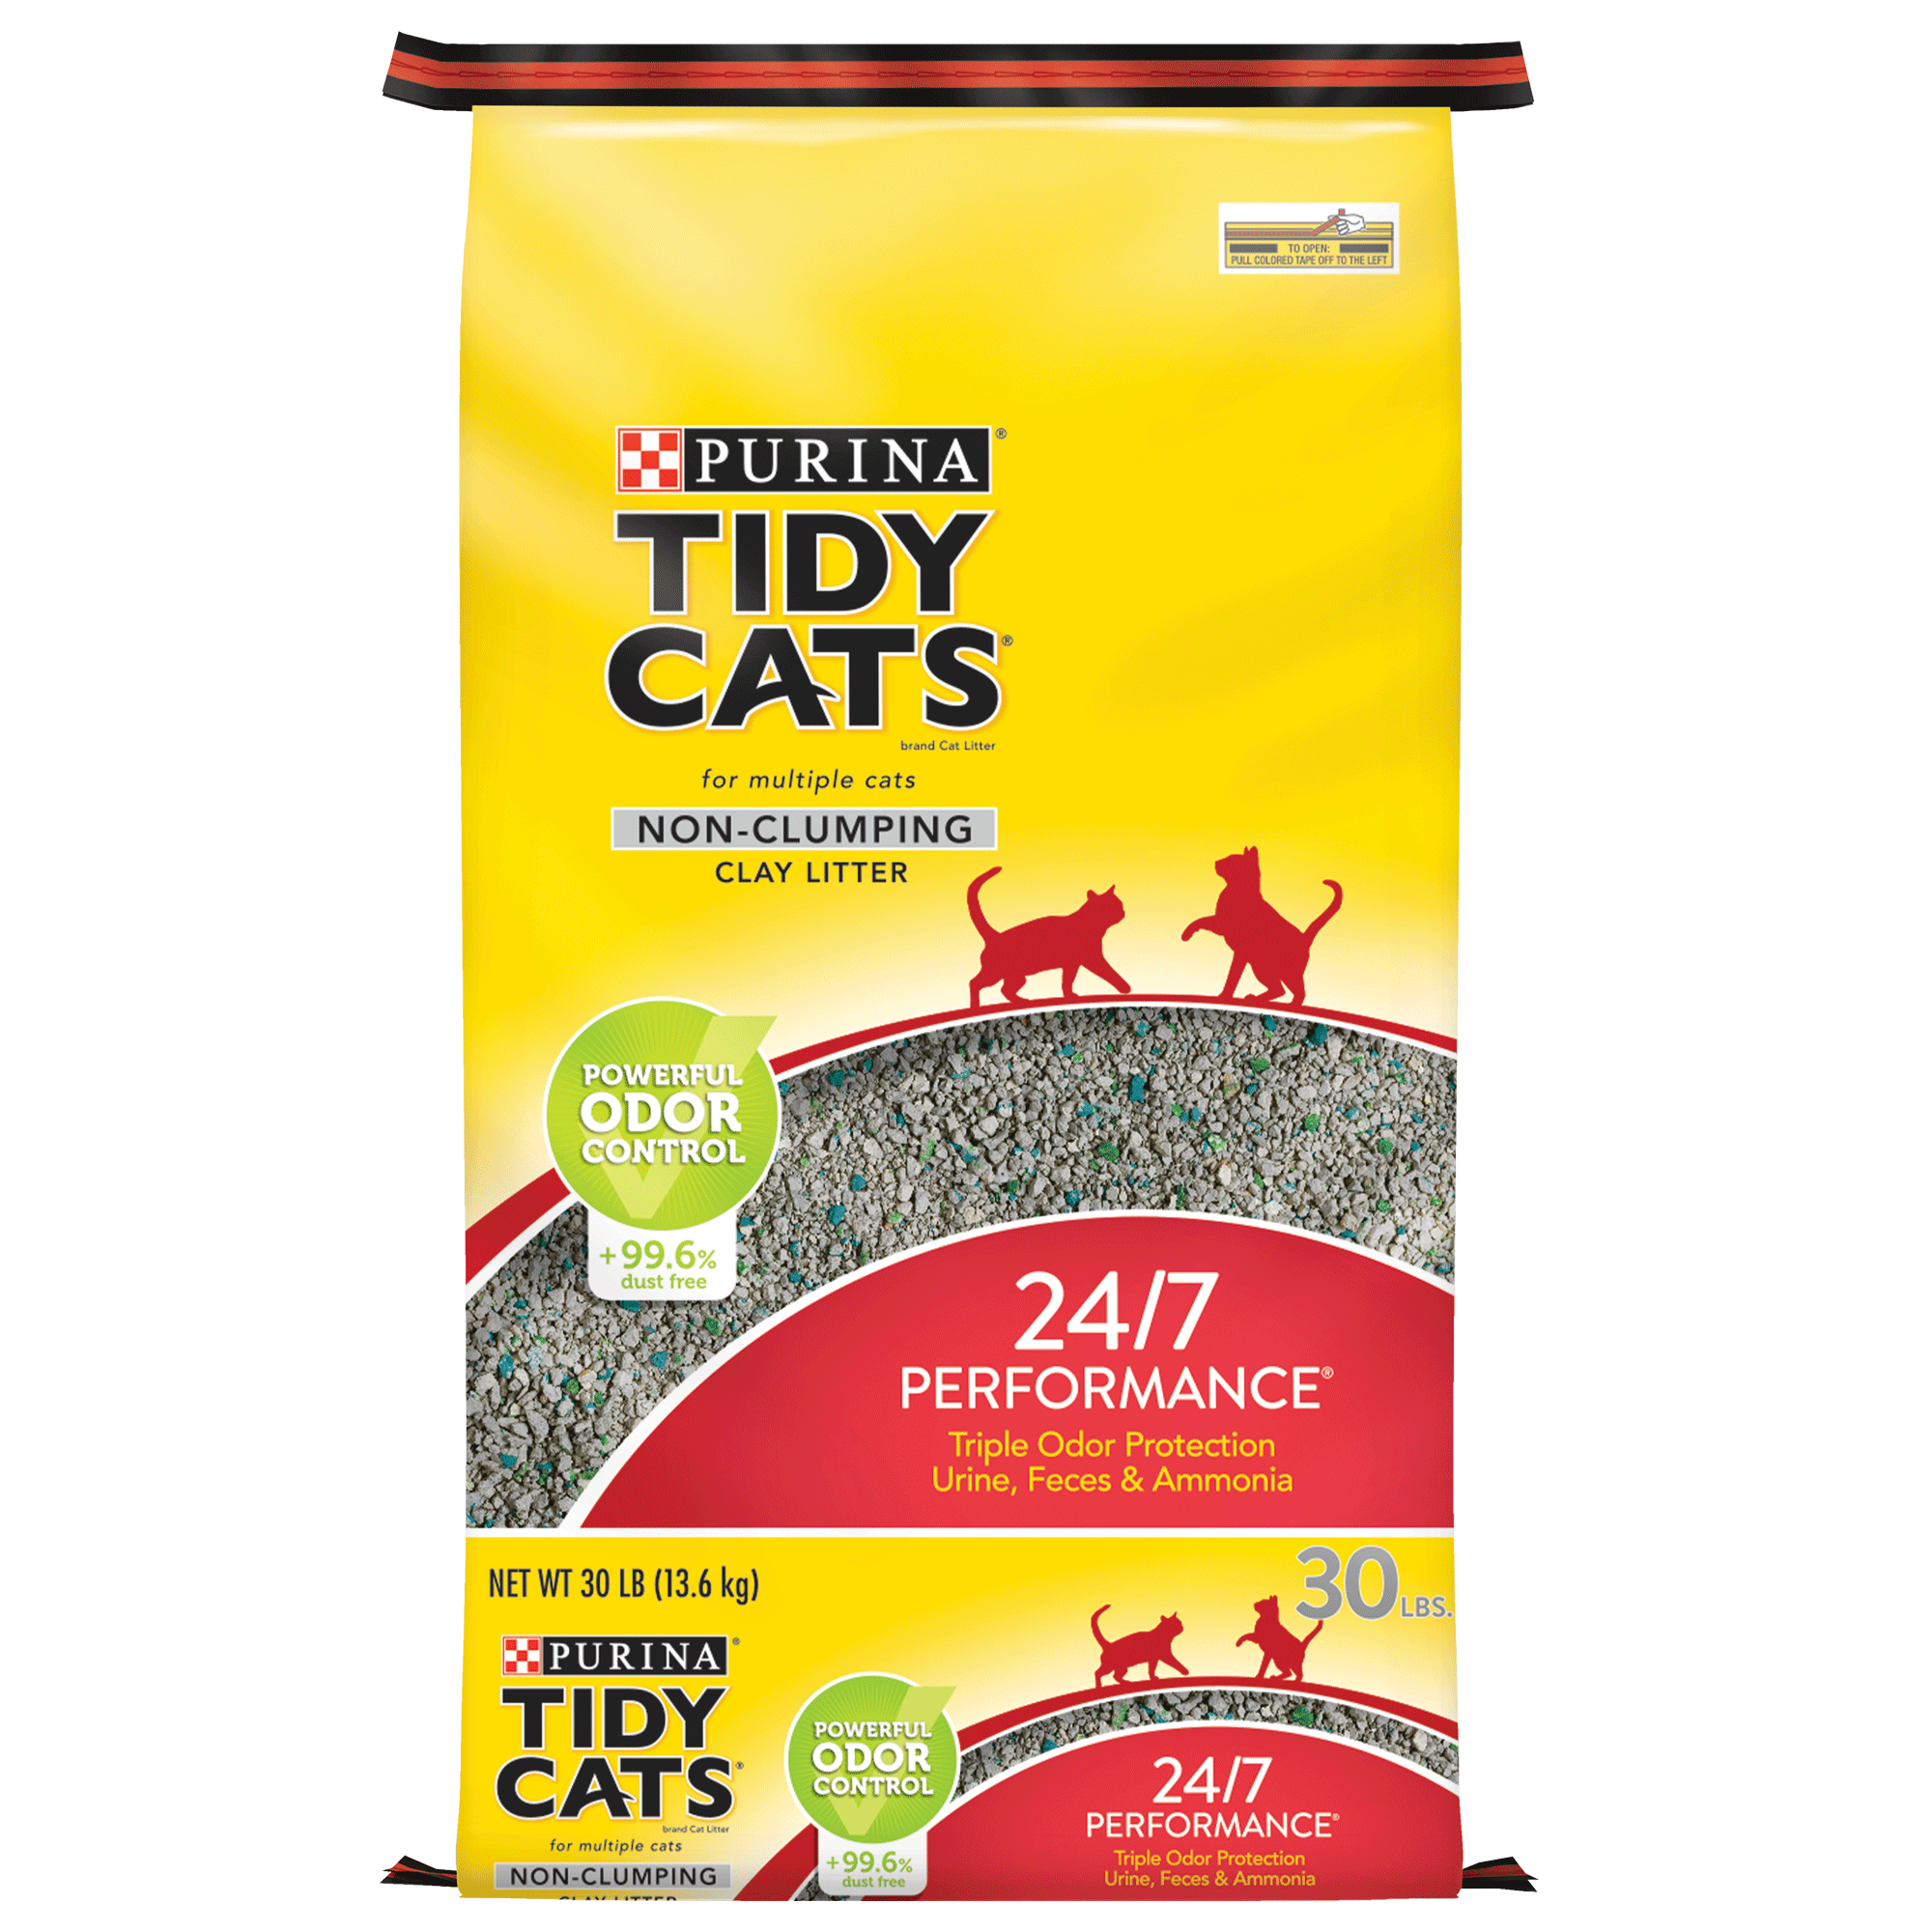 Purina Tidy Cats 24/7 Performance for Multiple Cats Non-Clumping Cat Litter - 30 lb. Bag